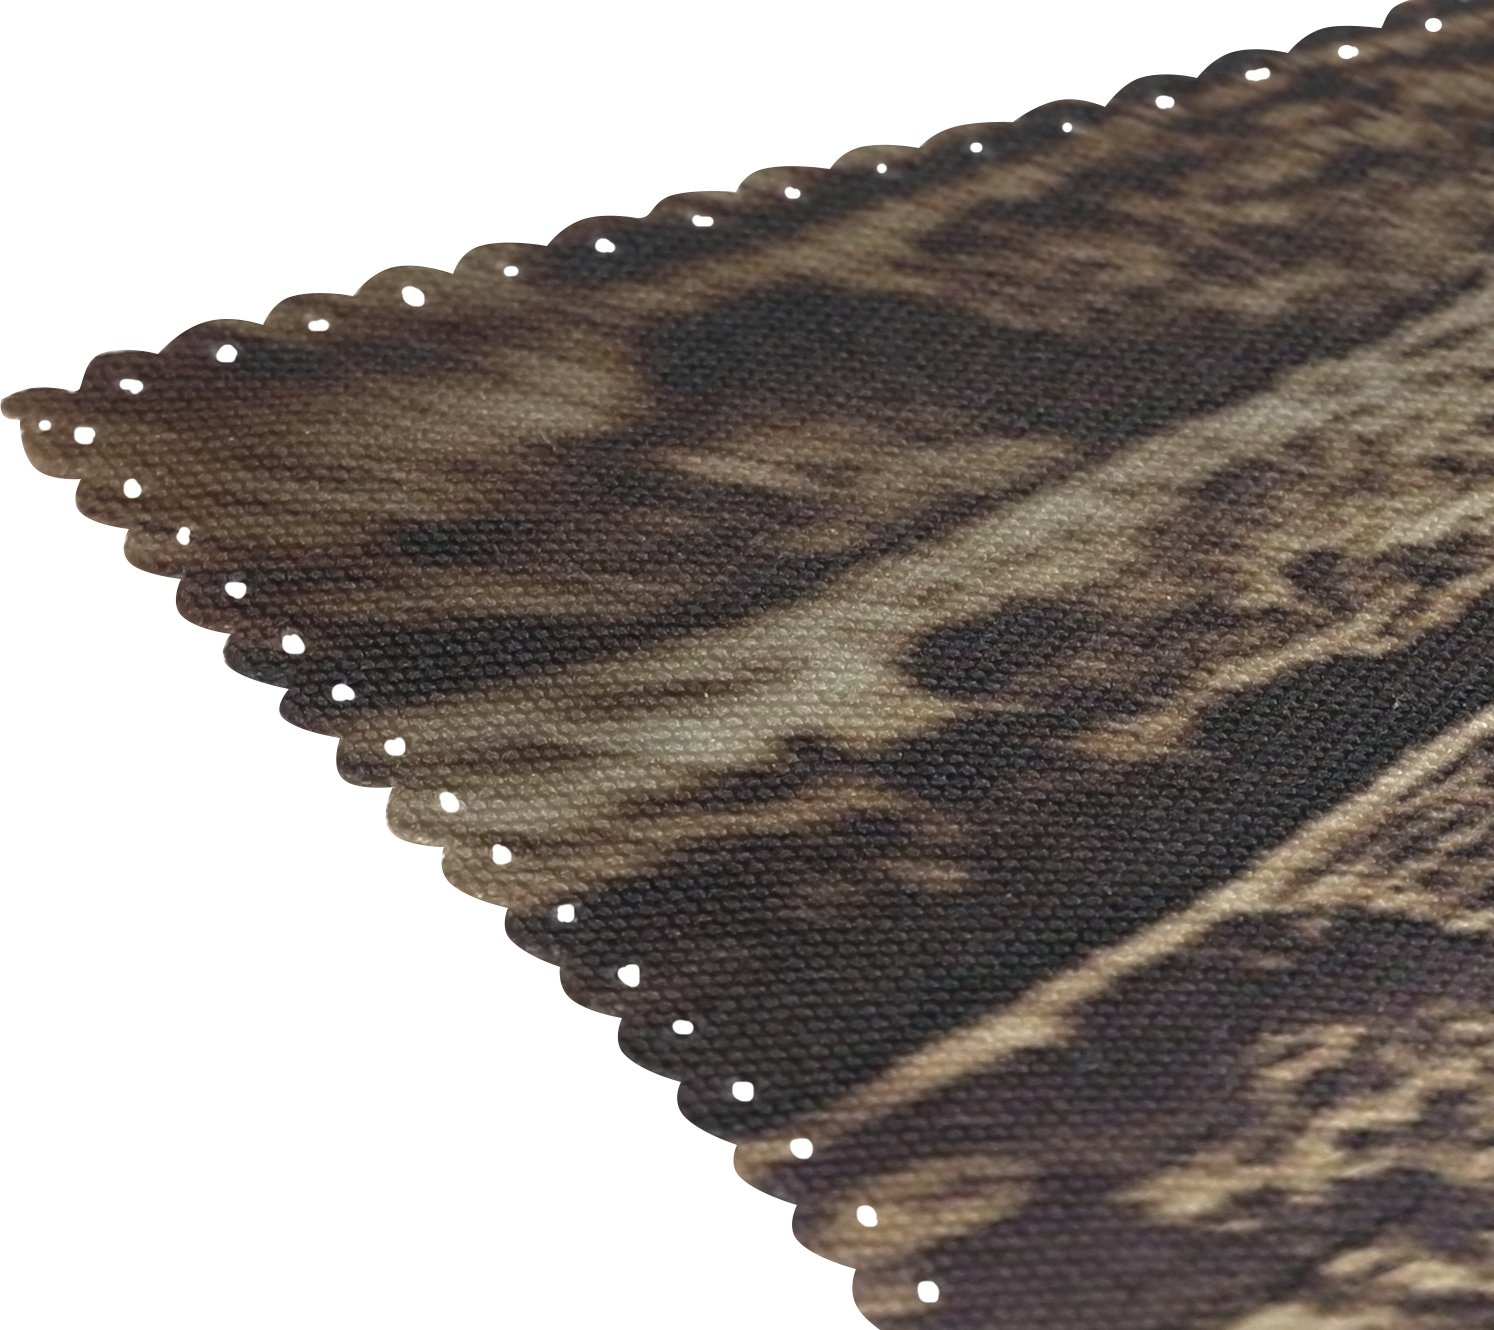 WIEDLKL Eye Wood Knothole Wood Eye Brown Wooden Structure Placemats Set Of 4 Heat Insulation Stain Resistant For Dining Table Durable Non-slip Kitchen Table Place Mats by WIEDLKL (Image #5)